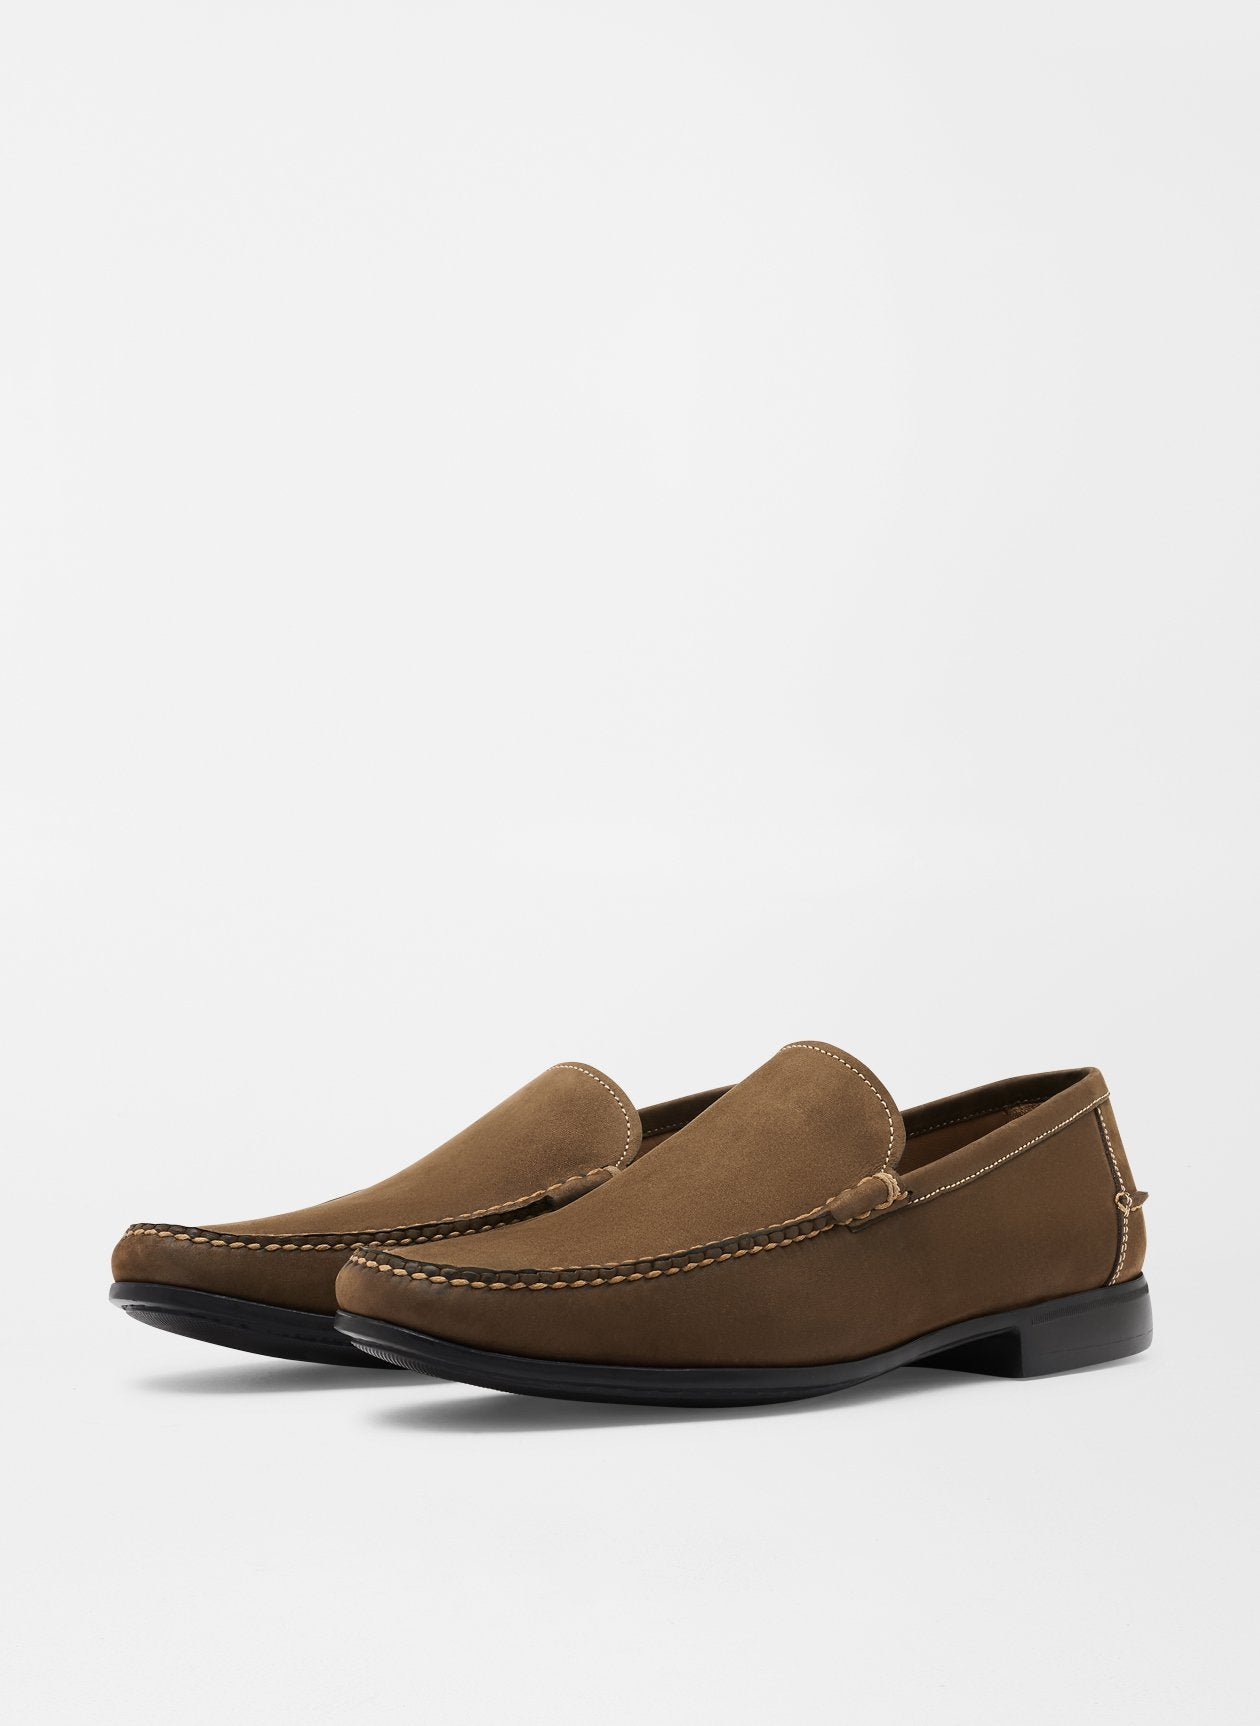 PETER MILLAR Men's Shoes Peter Millar Nubuck Ventian Loafer || David's Clothing